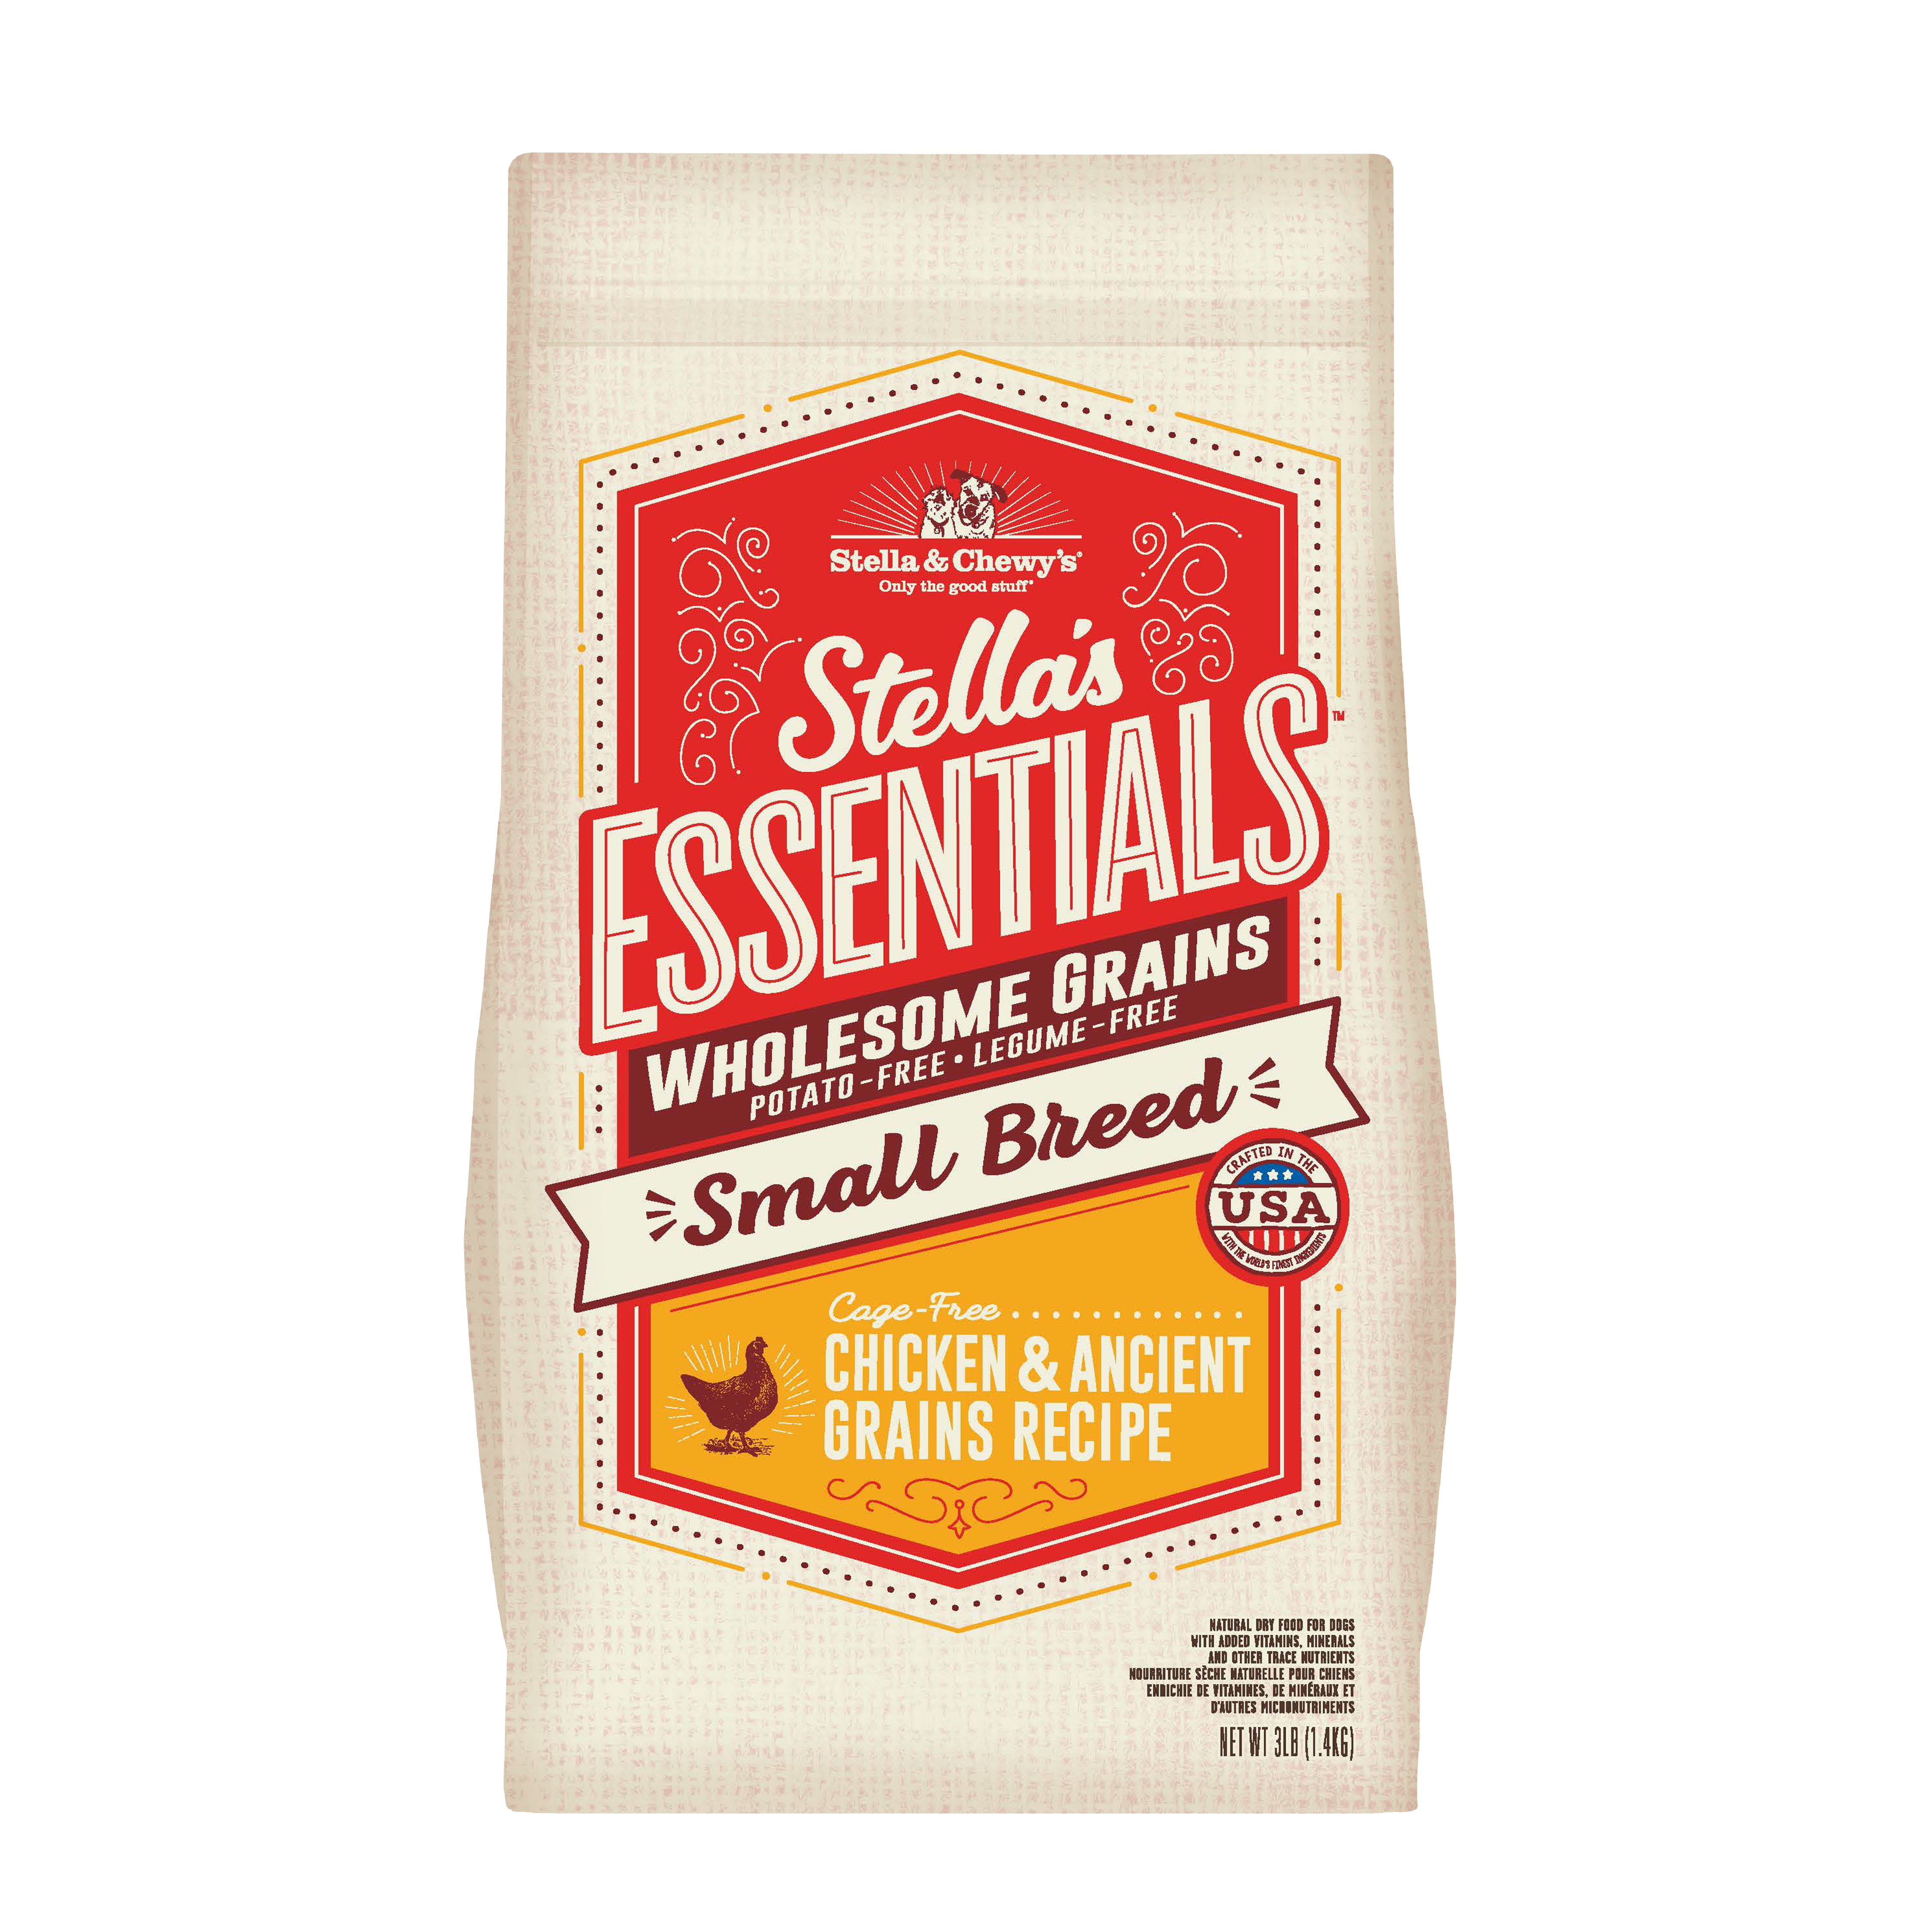 Stella & Chewy's Essentials Wholesome Grains Small Breed Chicken & Ancient Grains Dry Dog Food, 3-lb